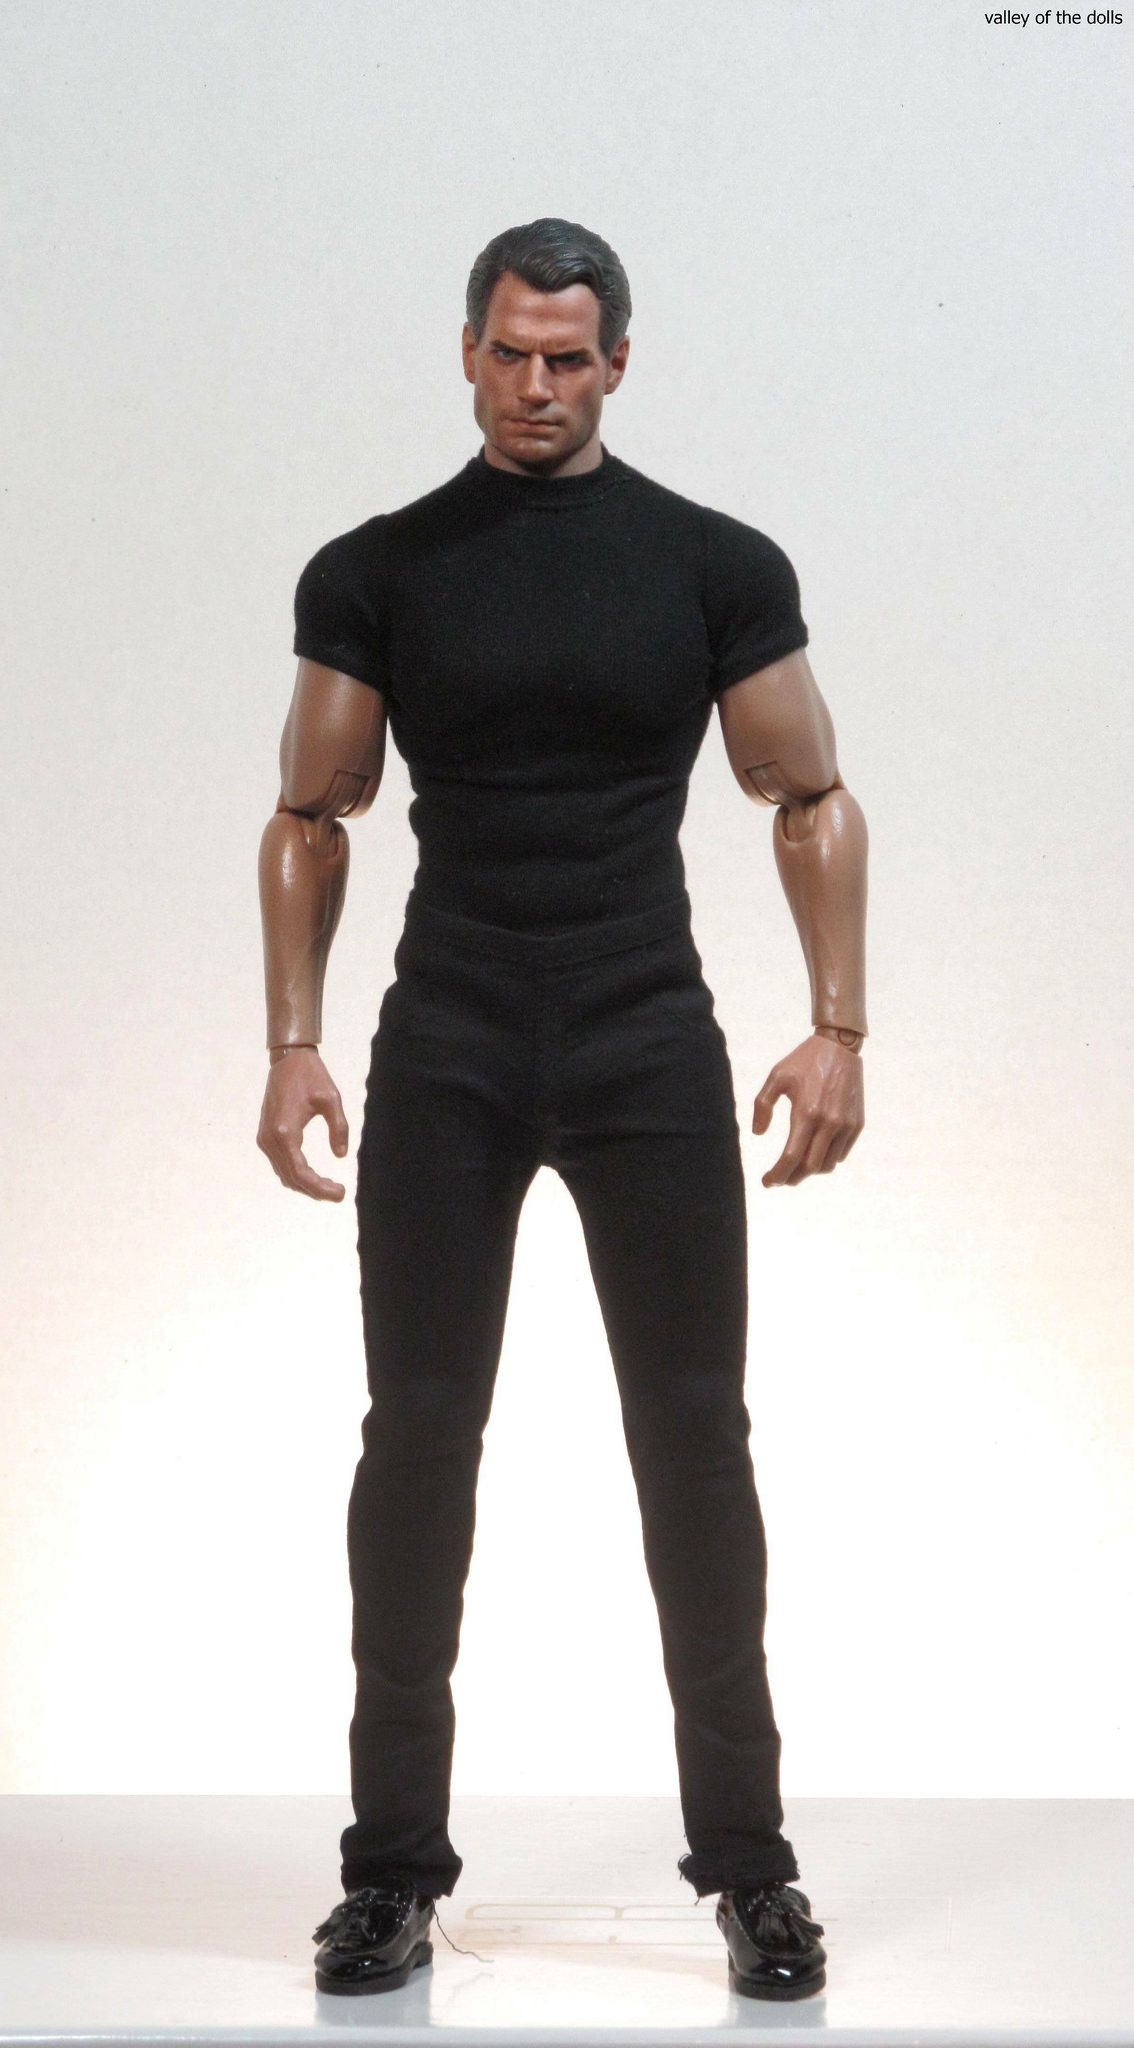 165c4e2125 I'm testing doll and action figure heads on various bodies! I have a new  drama to start after the second season of young dolls in love in completed!  this ...